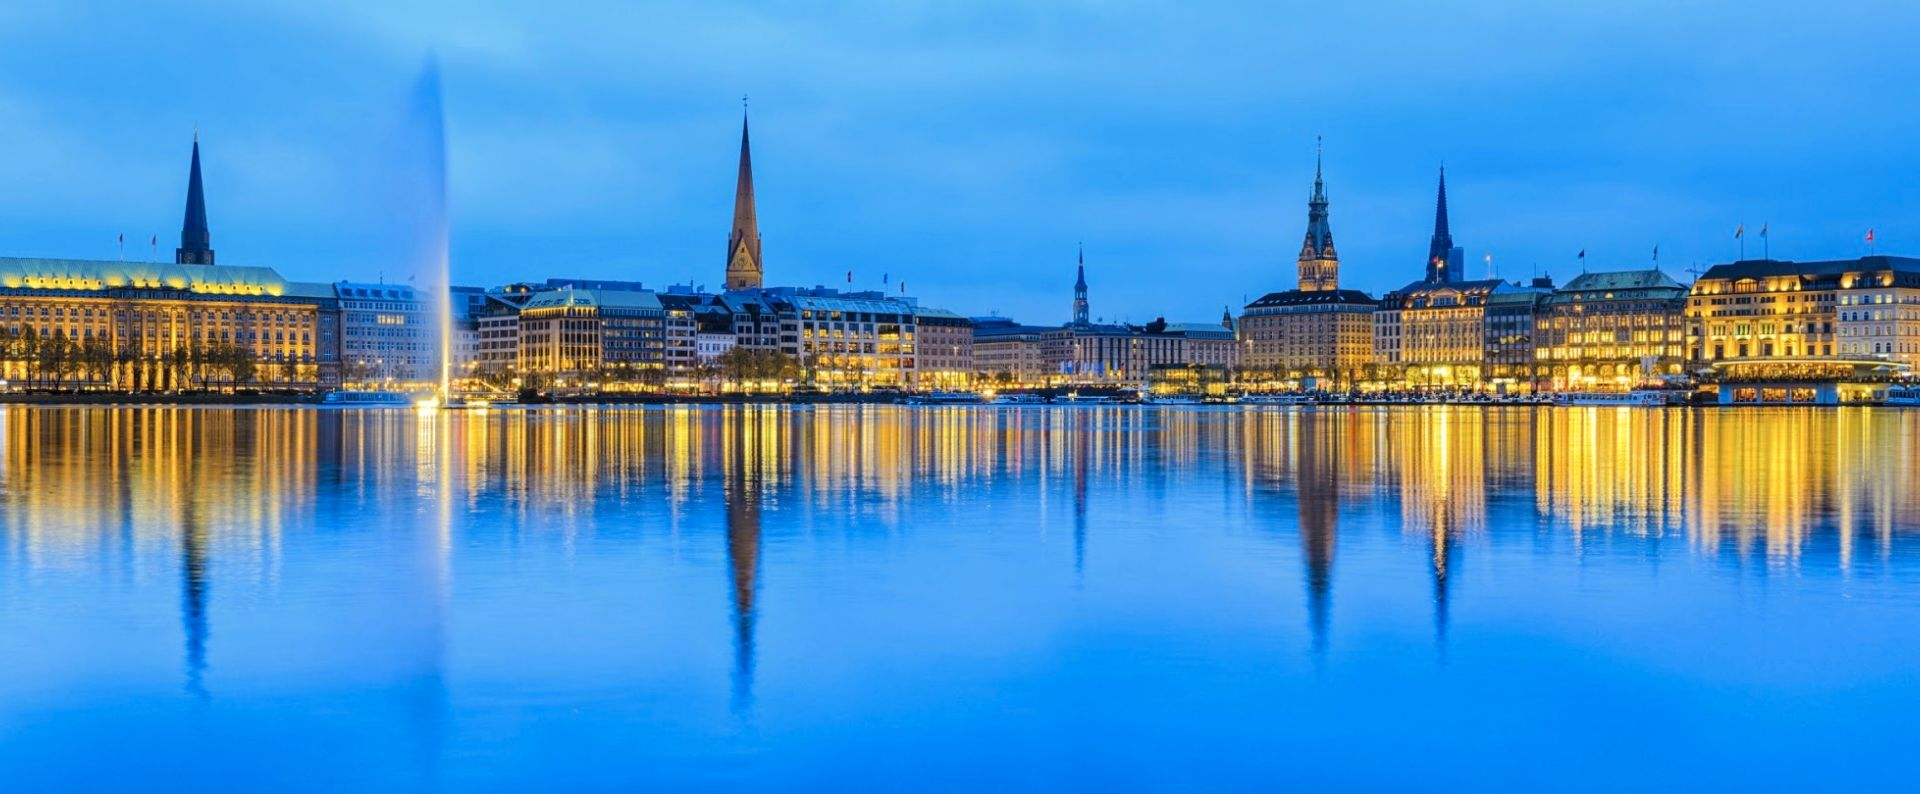 Hambourg - Allemagne ©Thinkstock